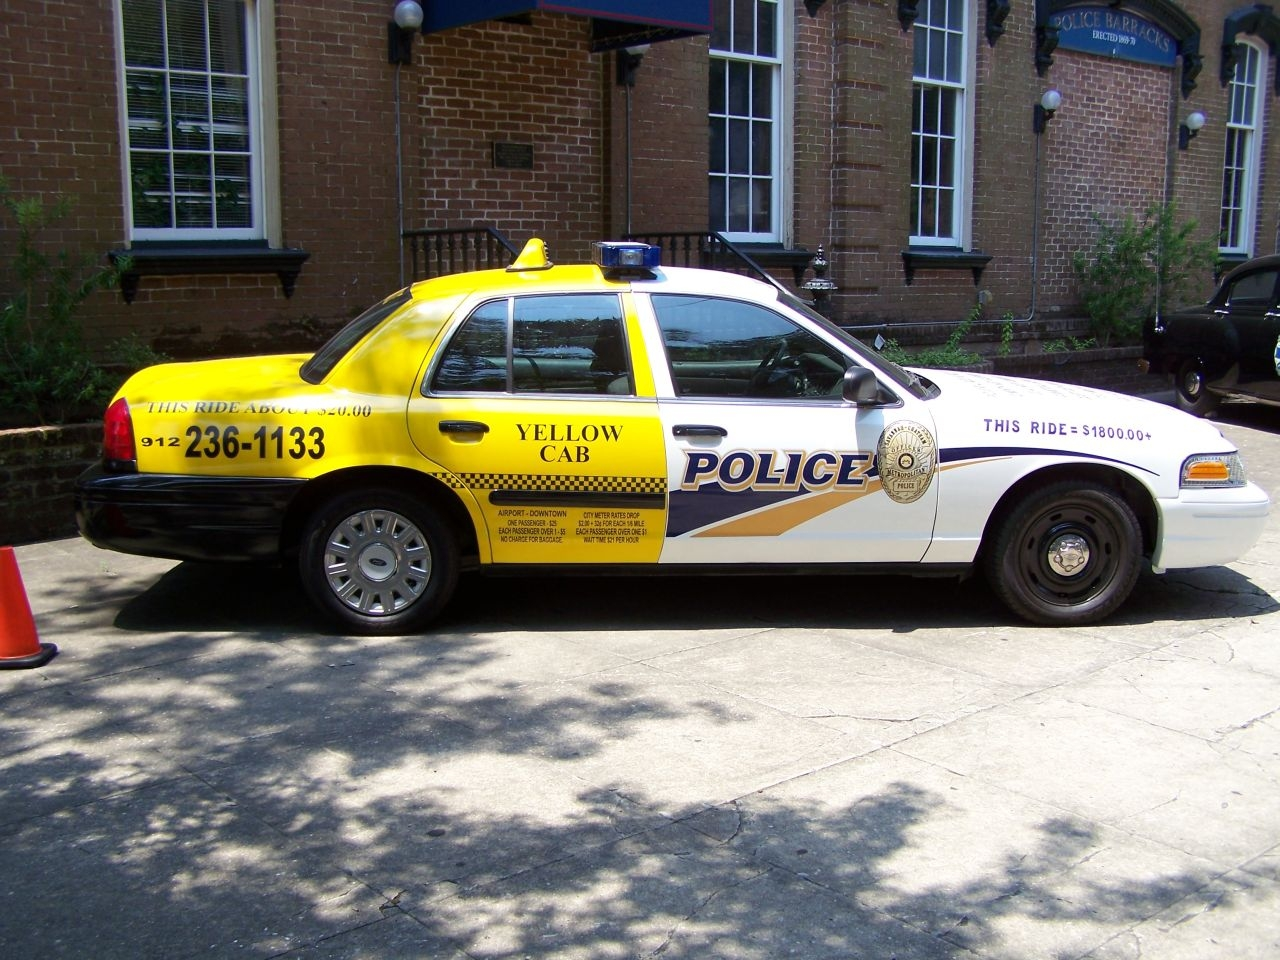 Police Car, part-time cab